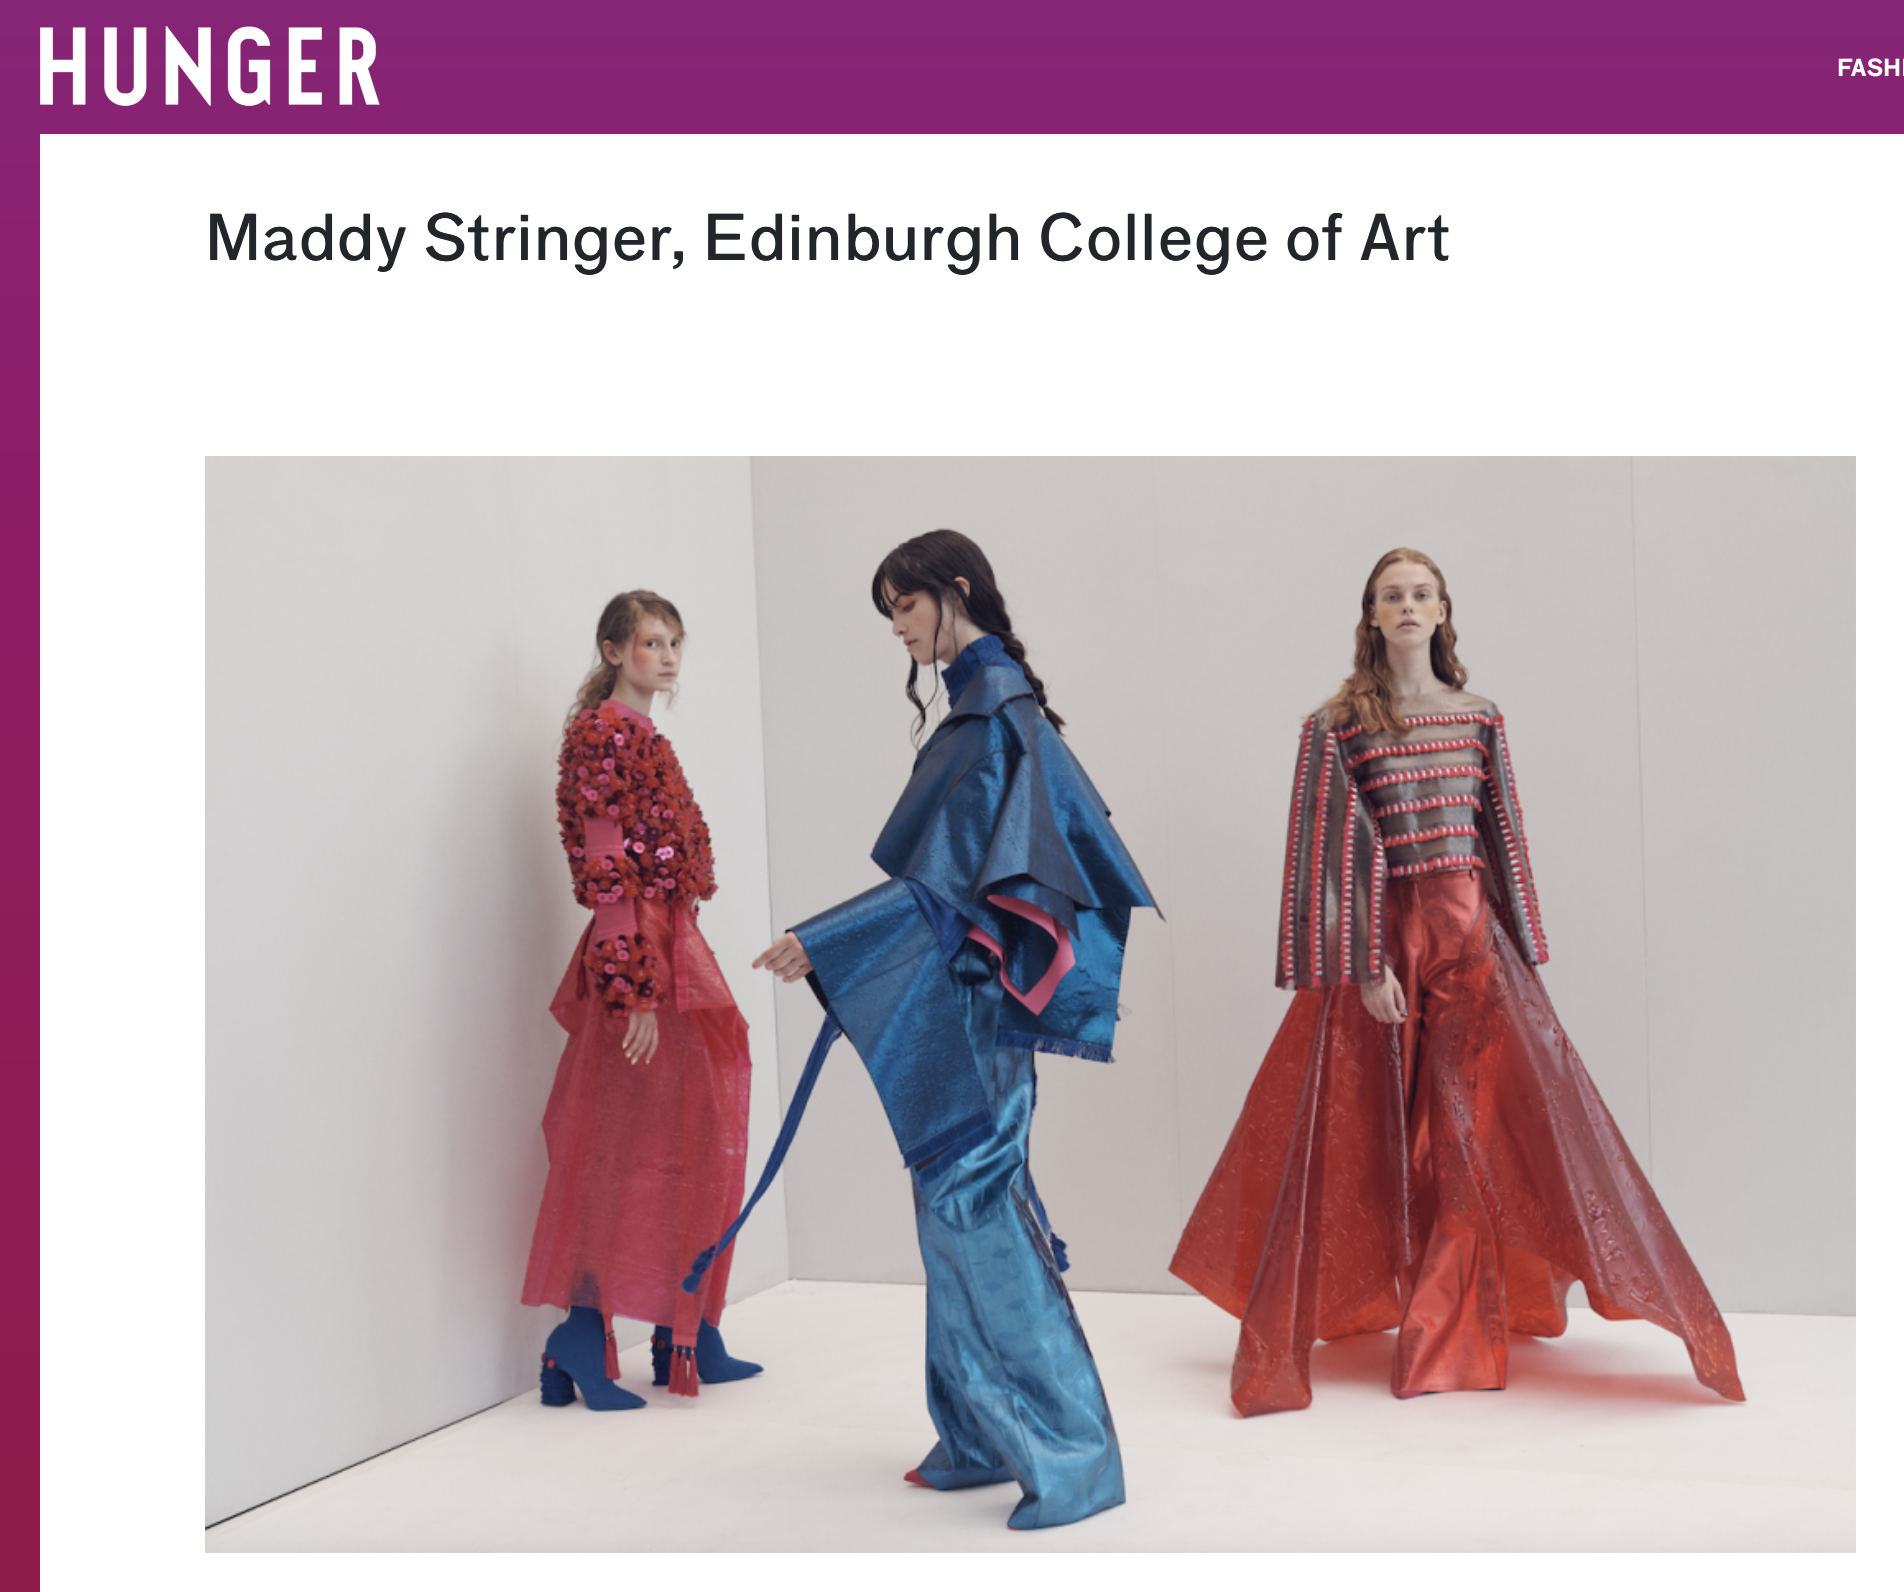 Hunger - THE GRADUATES: 15 UP-AND-COMING YOUNG DESIGNERS TO KNOW23/07/2018